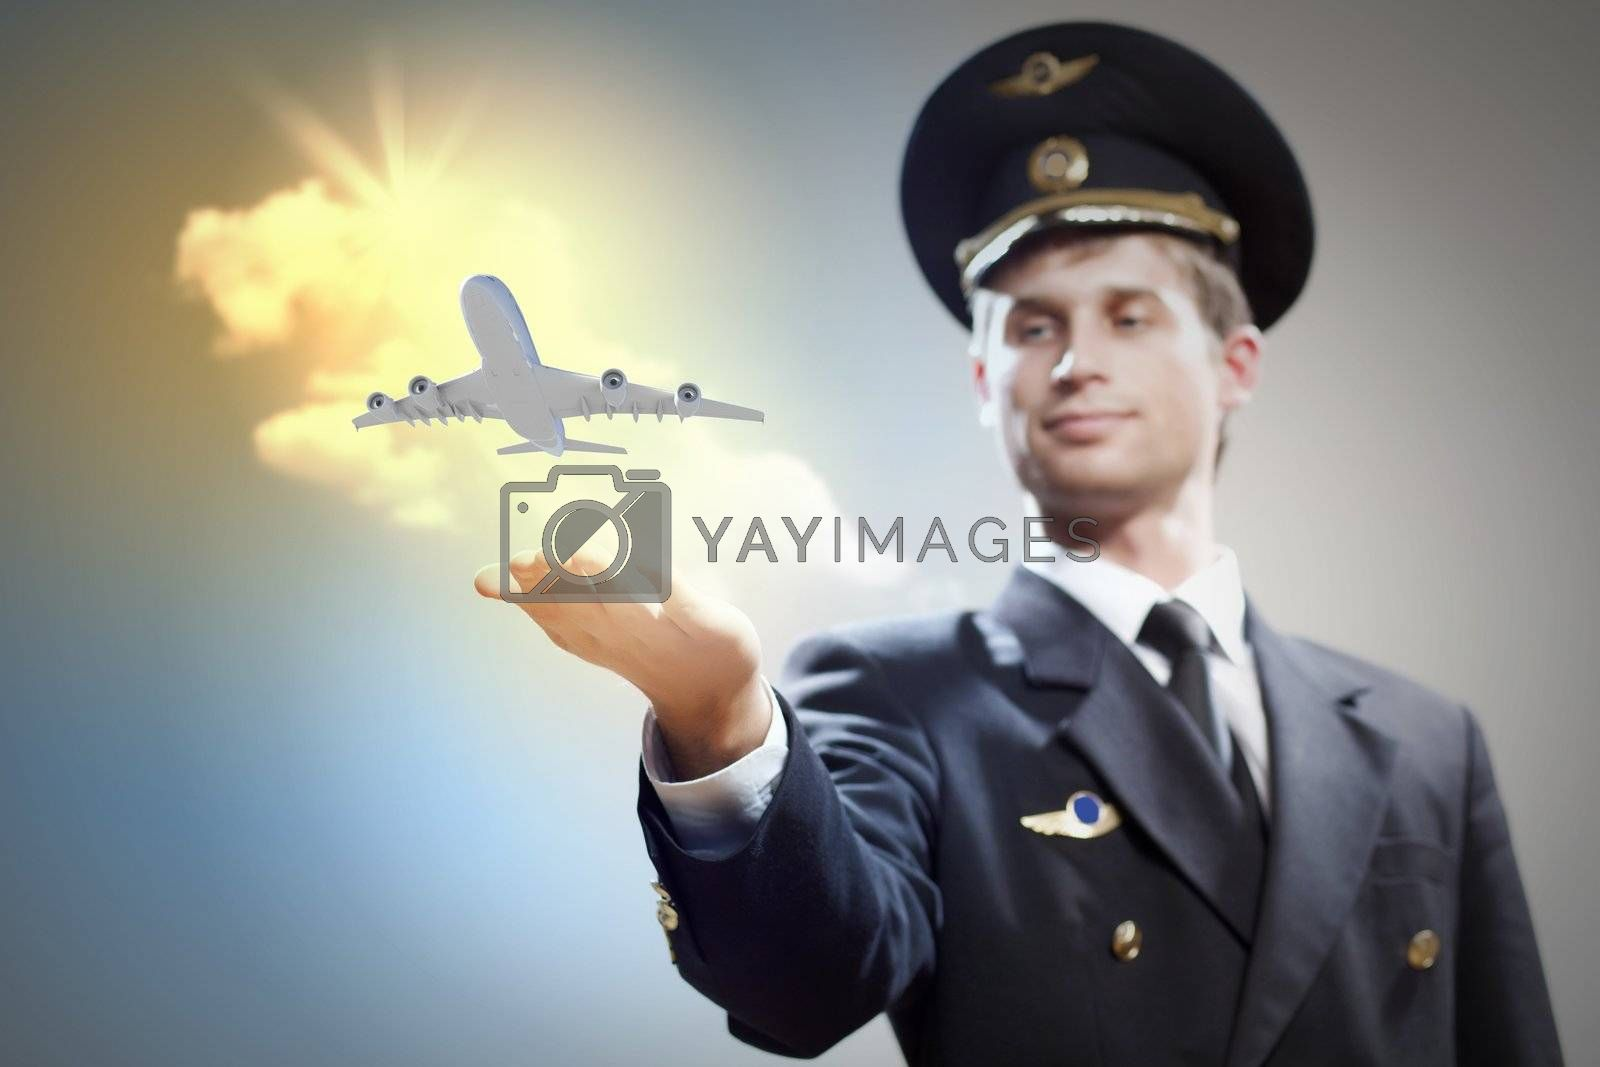 Royalty free image of Image of pilot with plane in hand by sergey_nivens